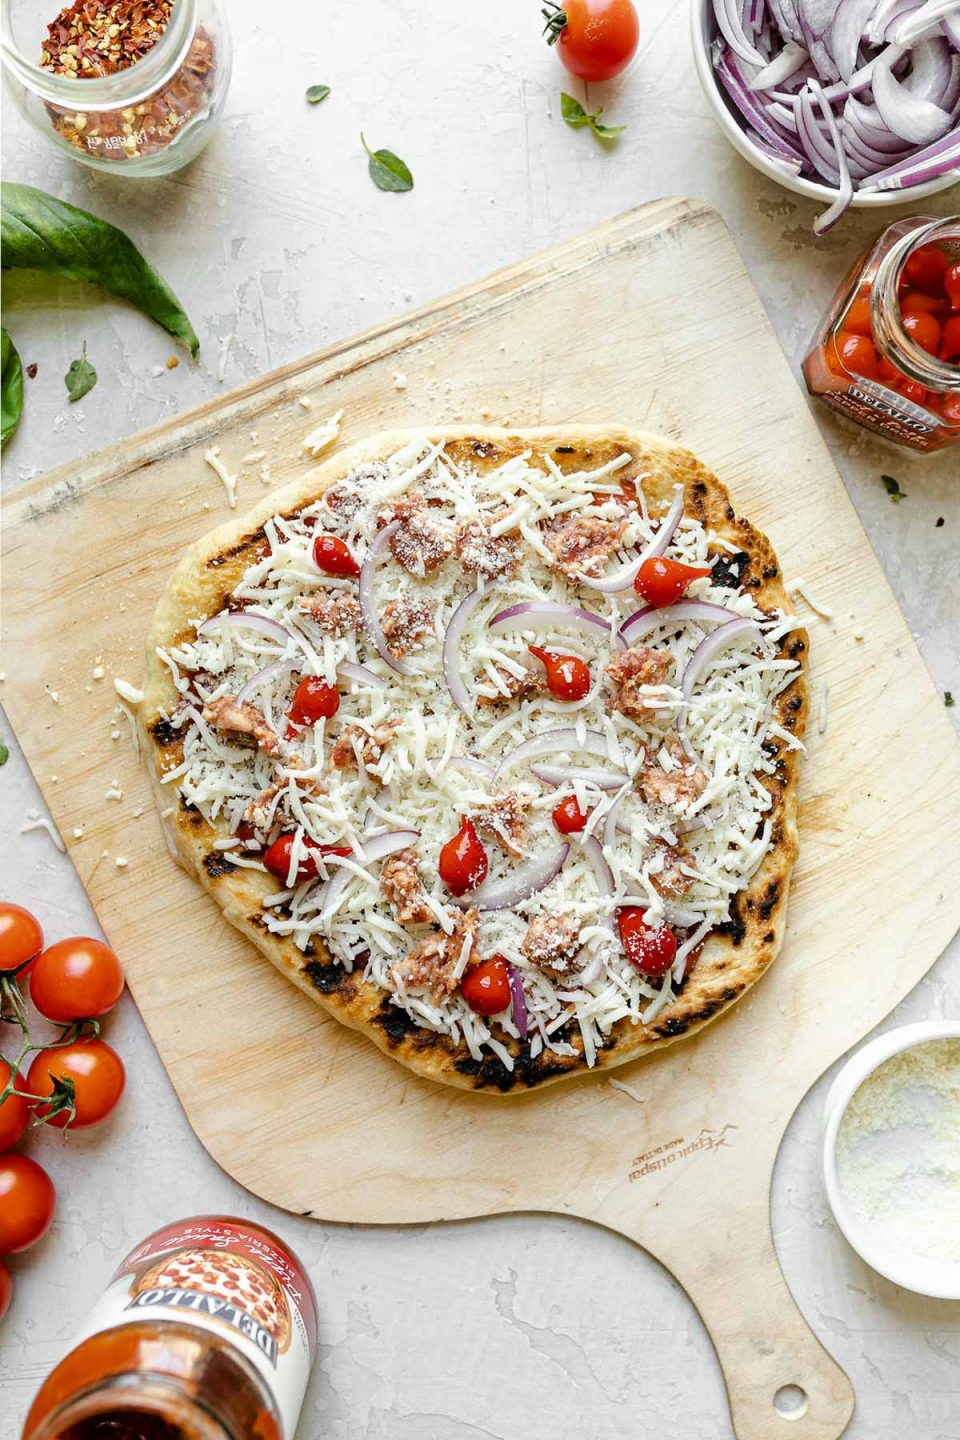 A par-grilled pizza topped with cheese, sausage, onions, & sweetie drop peppers. The crust sits atop a wooden pizza peel, surrounded by fresh basil, cherry tomatoes, cheese, peppers, & sliced red onion.